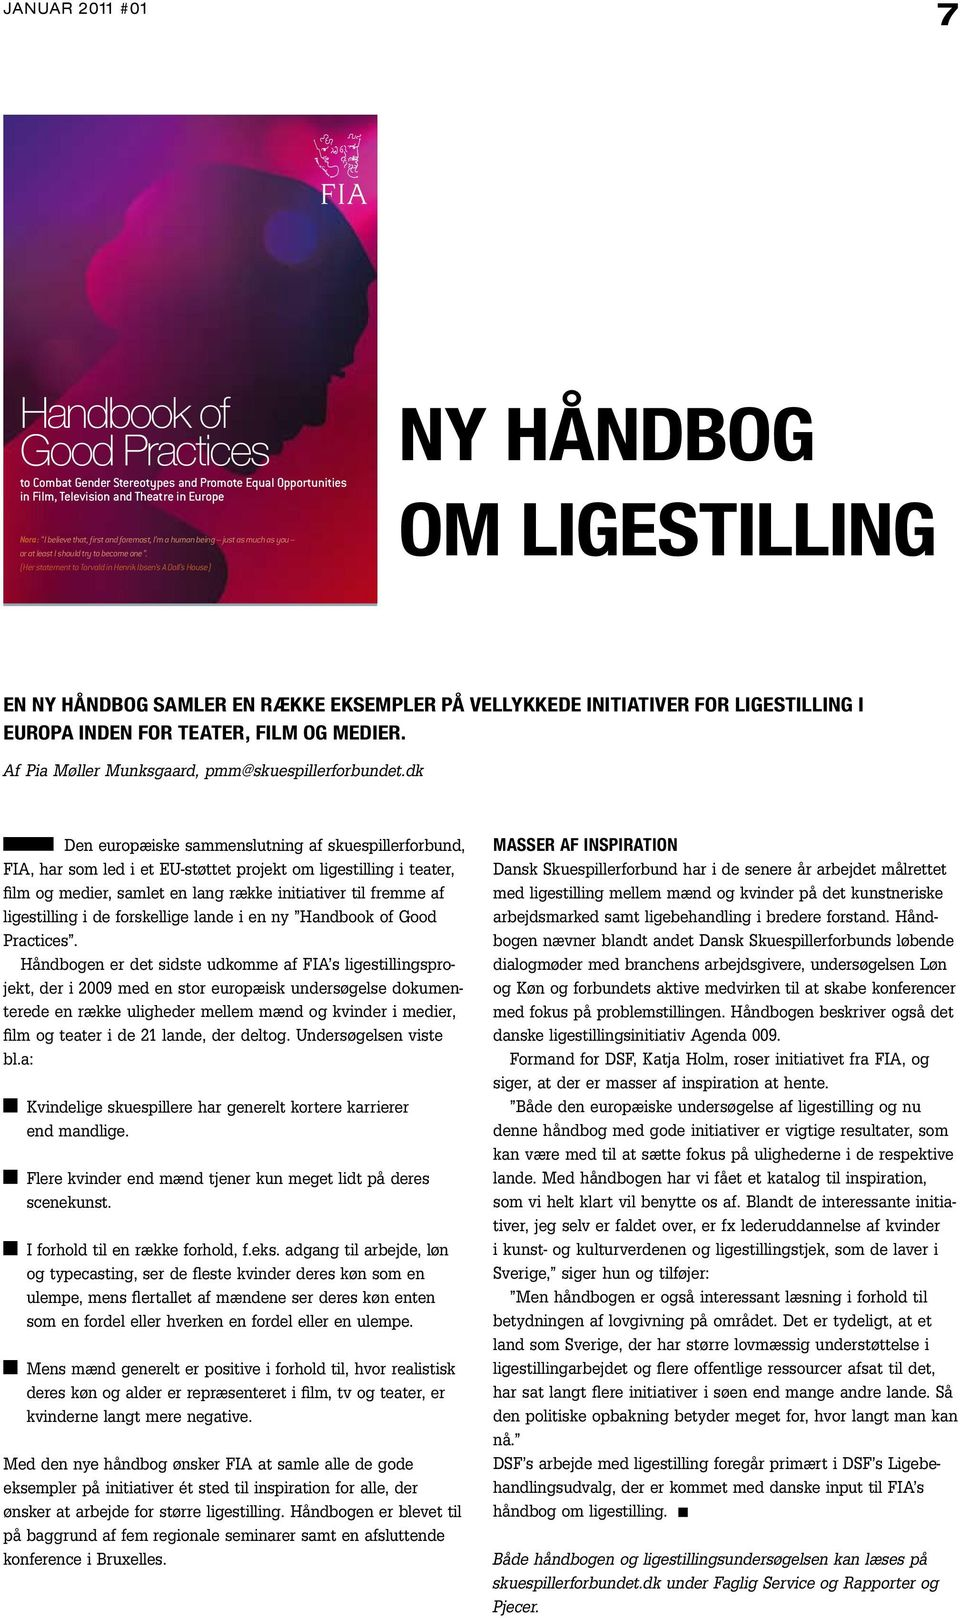 (Her statement to Torvald in Henrik Ibsen s A Doll s House) Ny håndbog om ligestilling With the financial support of the European Commission JULY 2010 EN NY HÅNDBOG SAMLER EN RÆKKE EKSEMPLER PÅ